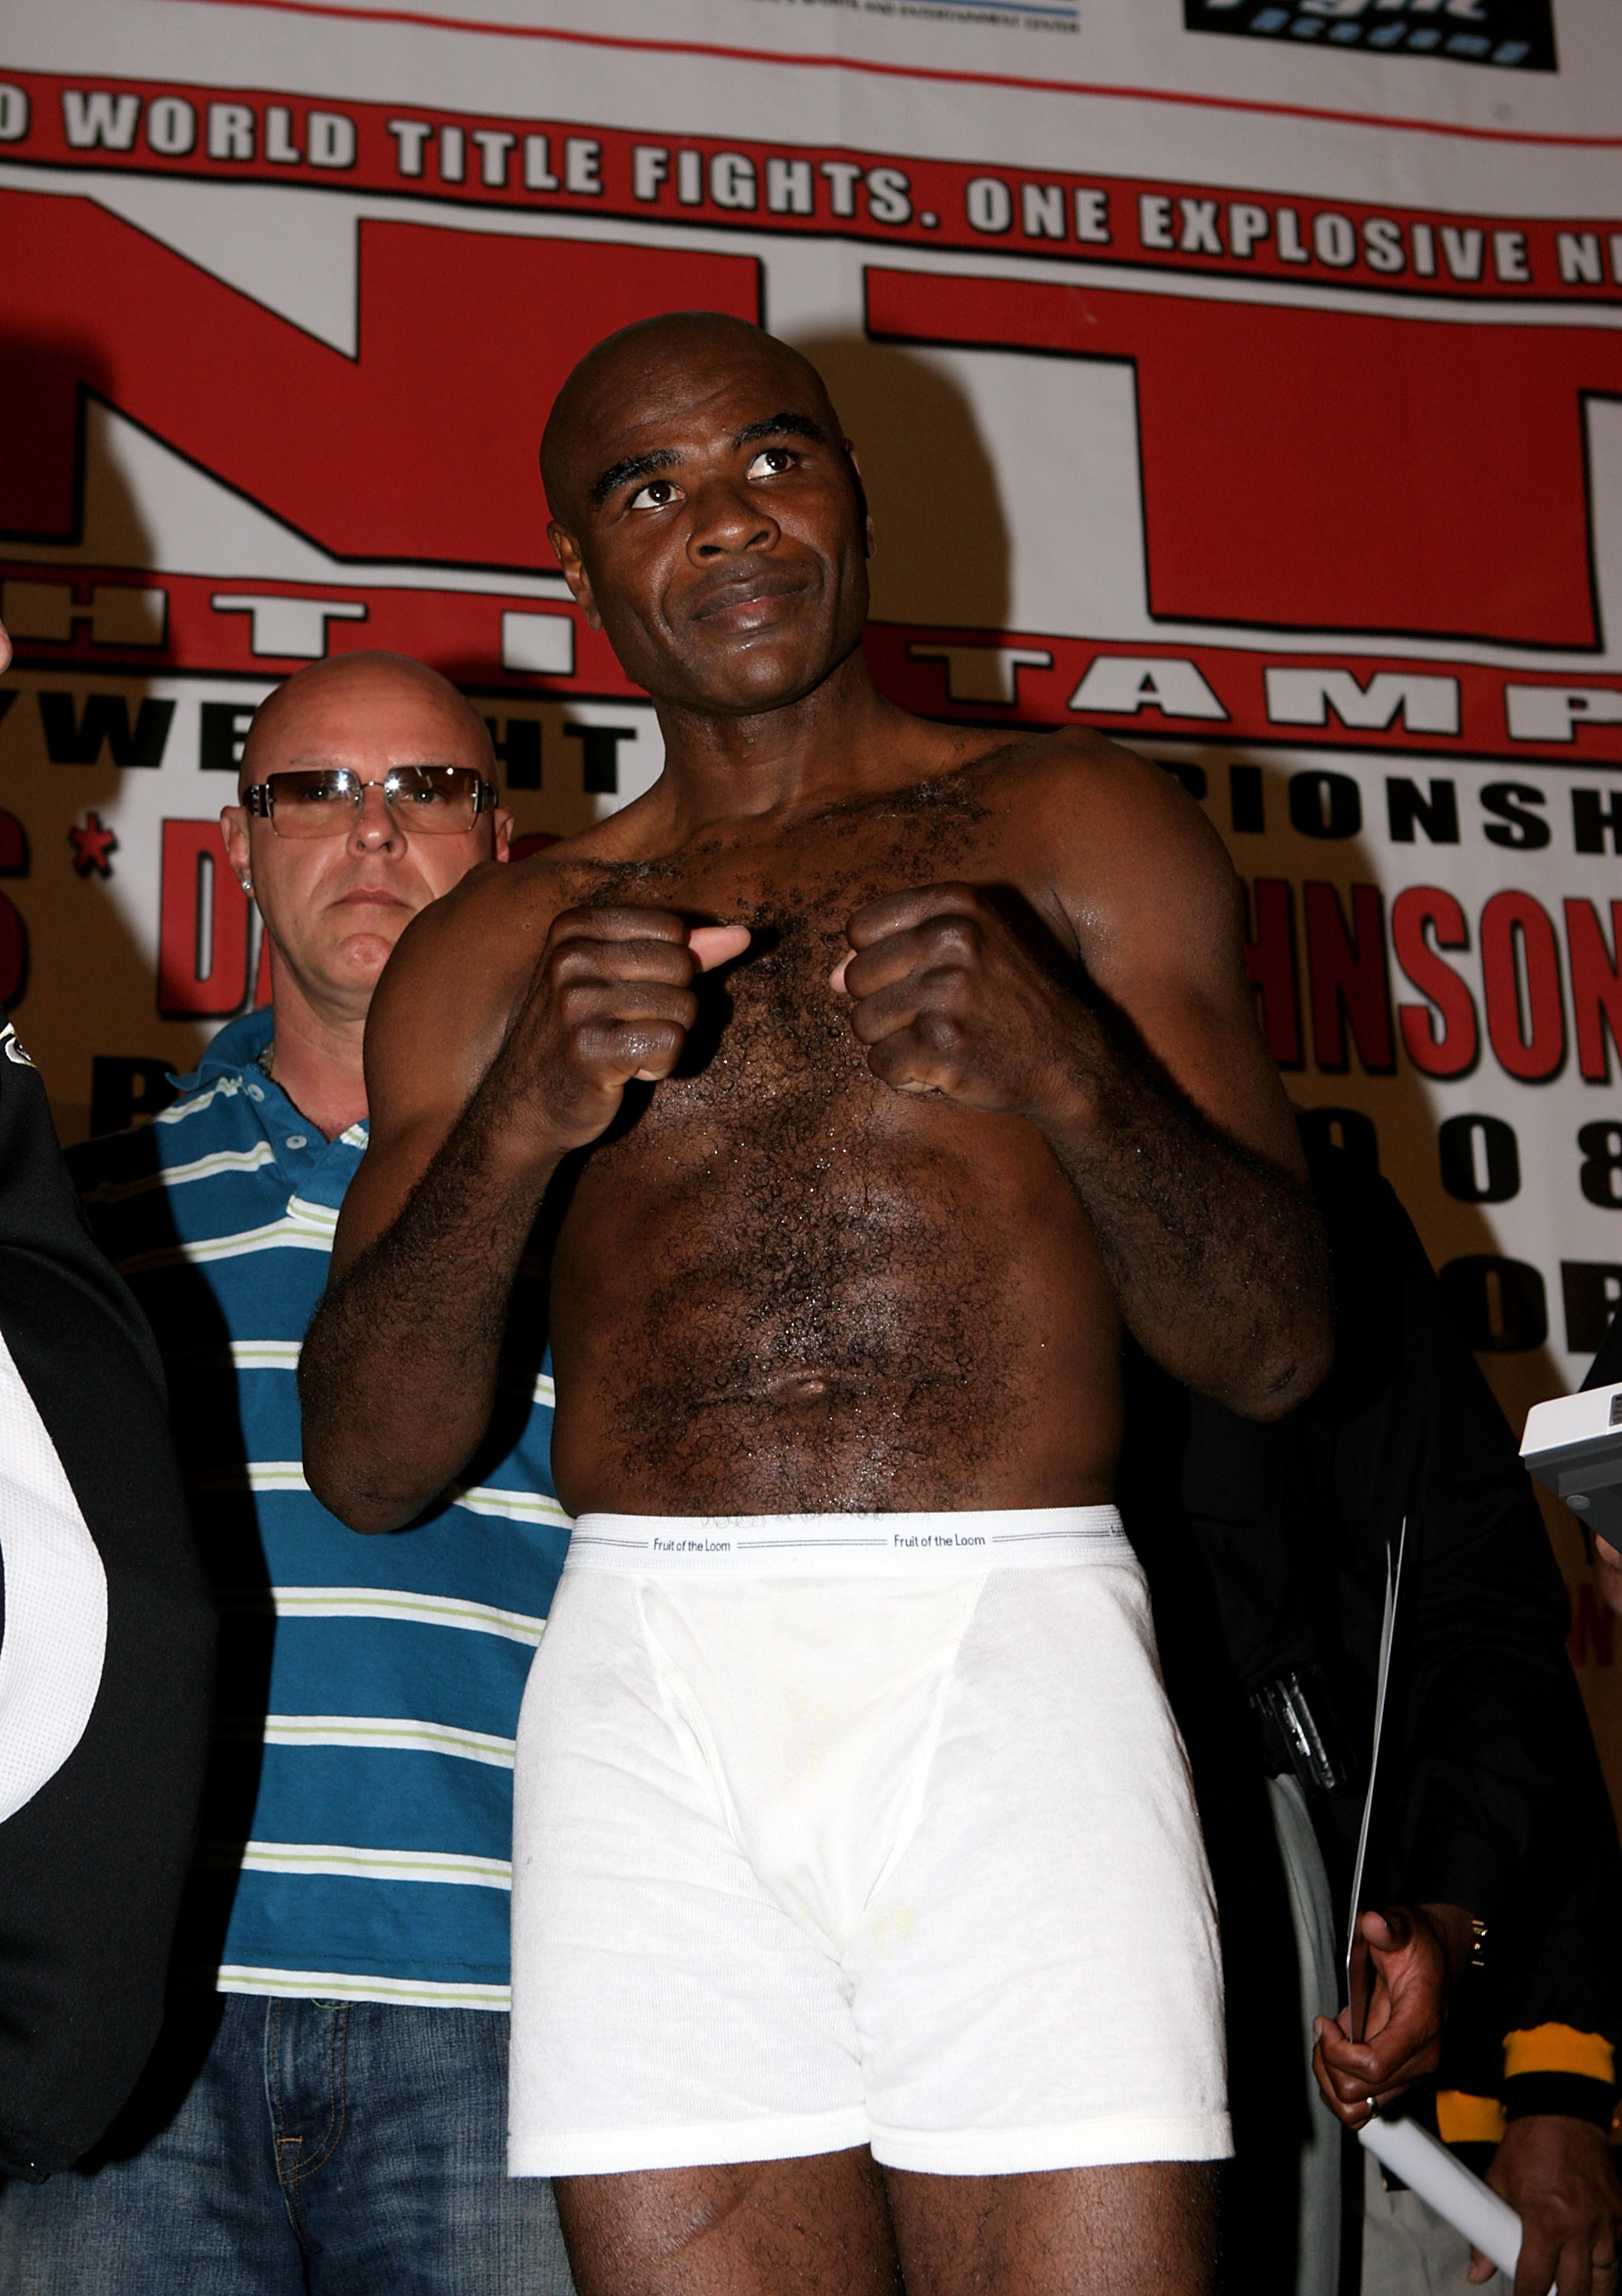 TAMPA, FLORIDA - APRIL 11: Glen Johnson poses during a weigh-in at The Westin Hotel on April 11, 2008 in Tampa, Florida. Chad Dawson and Glen Johnson are scheduled to fight at the St.Pete Times Forum on April 12 in Tampa, Florida. (Photo by John Gichigi/G